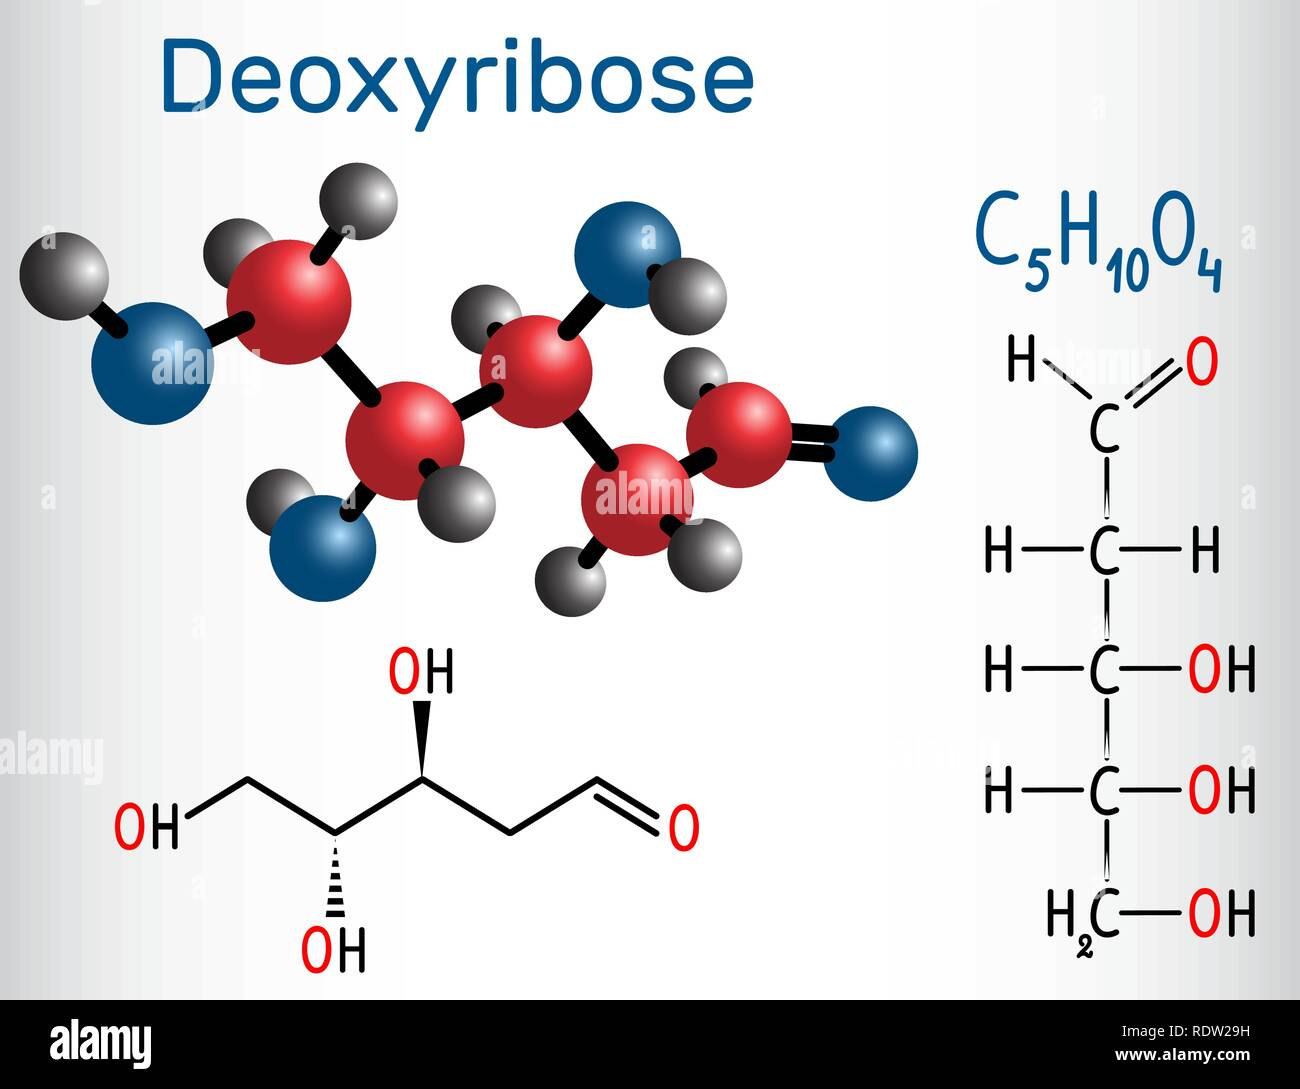 Linear form (acyclic) of Deoxyribose molecule, it is a monosaccharide (deoxy sugar), which has all the hydroxyl groups on the same side. Structural ch - Stock Image